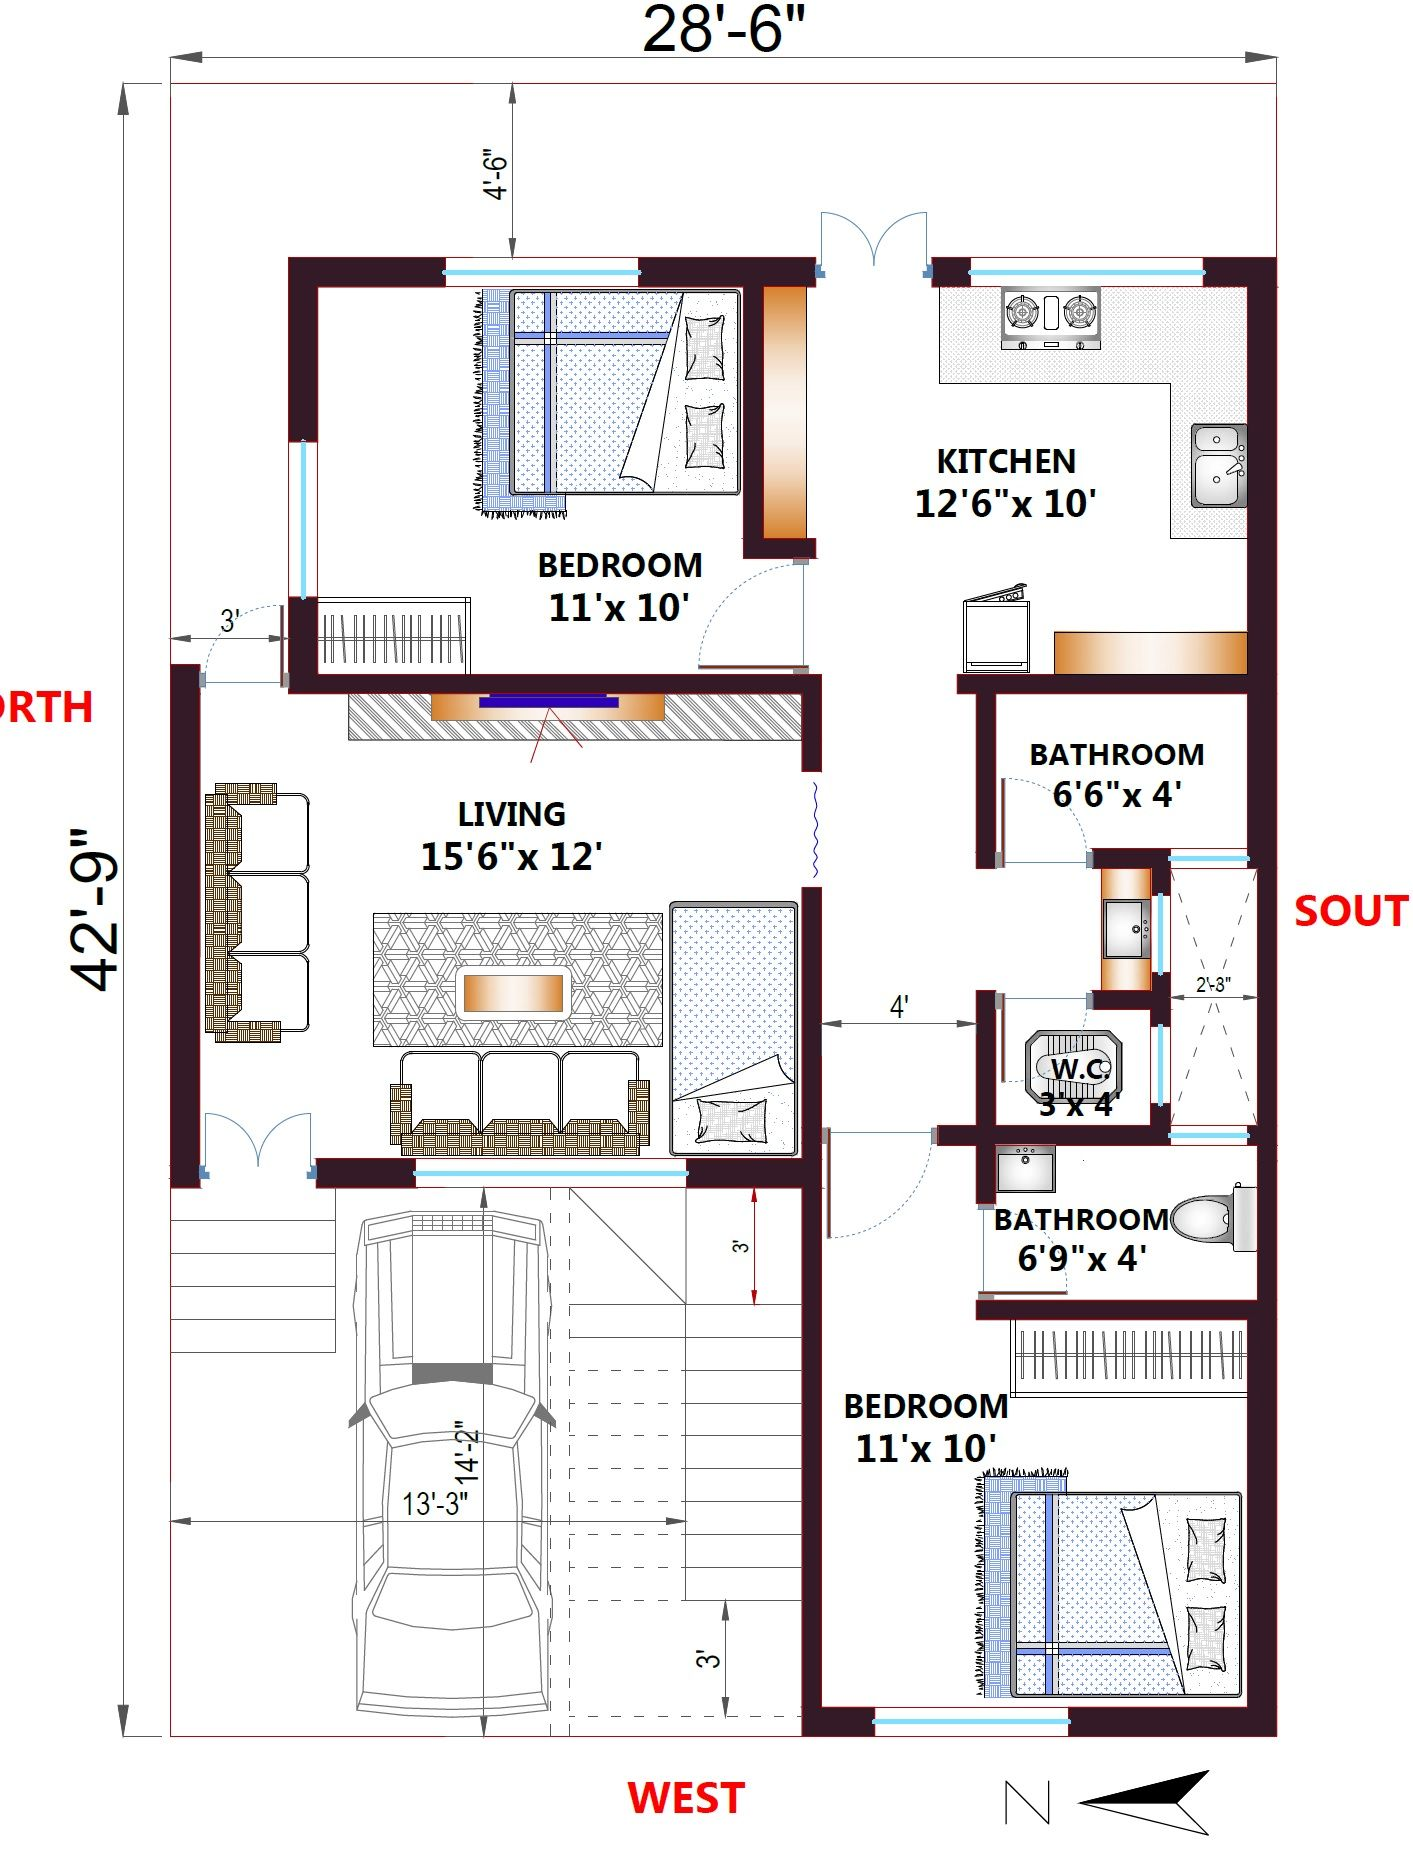 East West North Side Plan Are Available Watch Detail Videos To Understand Micro Concepts House Floor Plans House Plans Indian House Plans